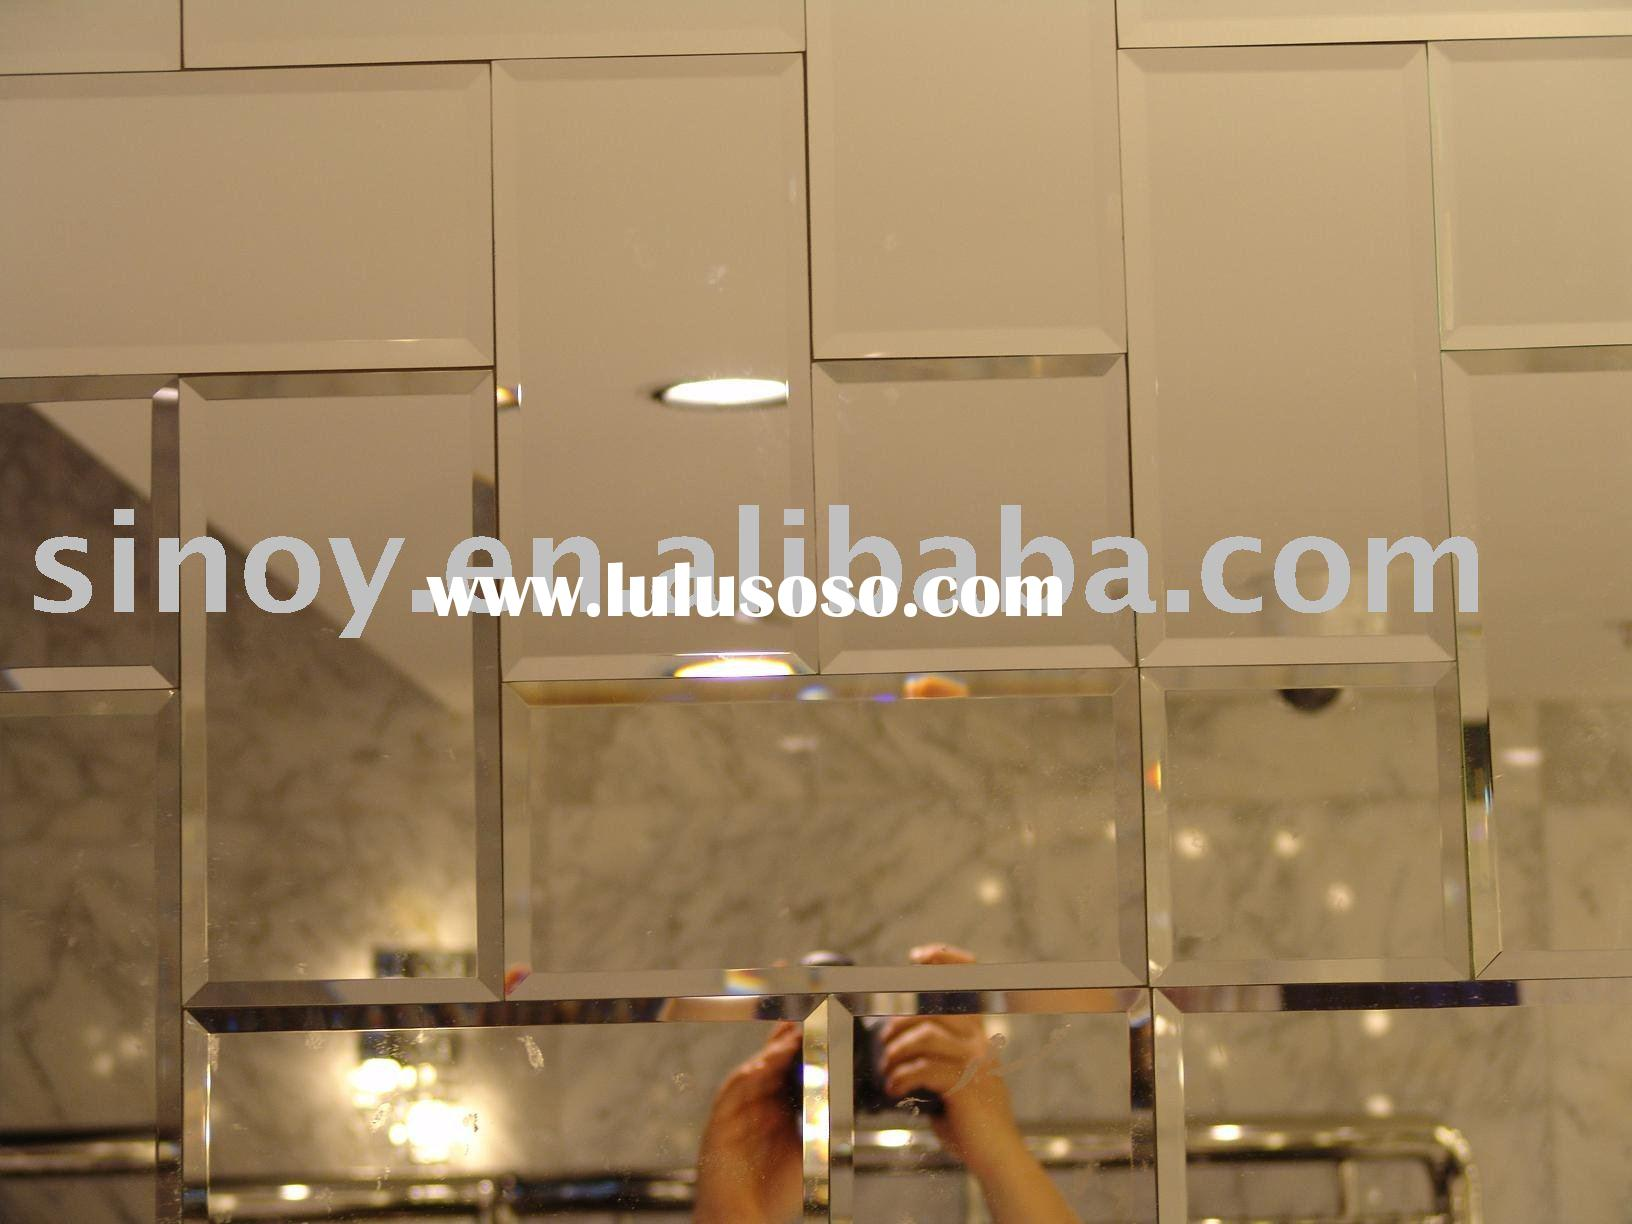 12x12 wall mirror tiles, 12x12 wall mirror tiles Manufacturers in ...